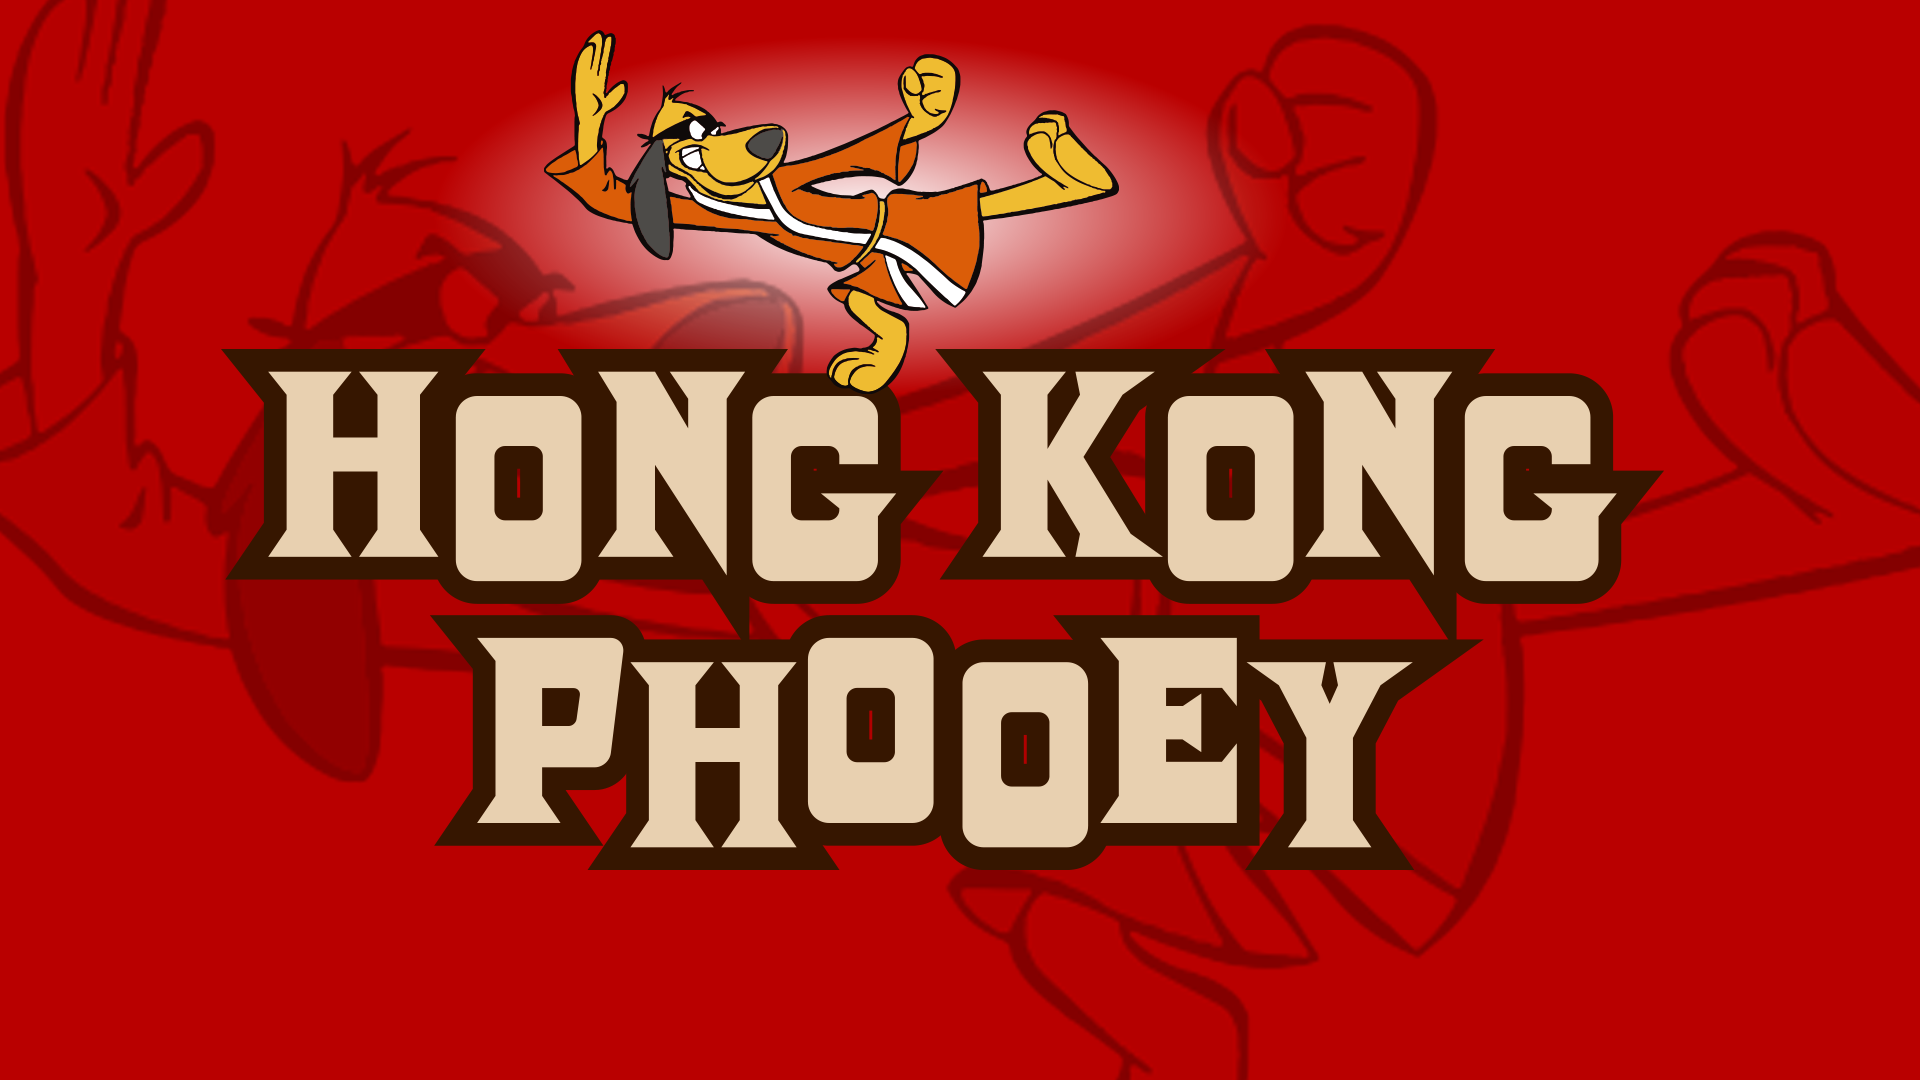 Download Hong Kong Phooey cool free fonts